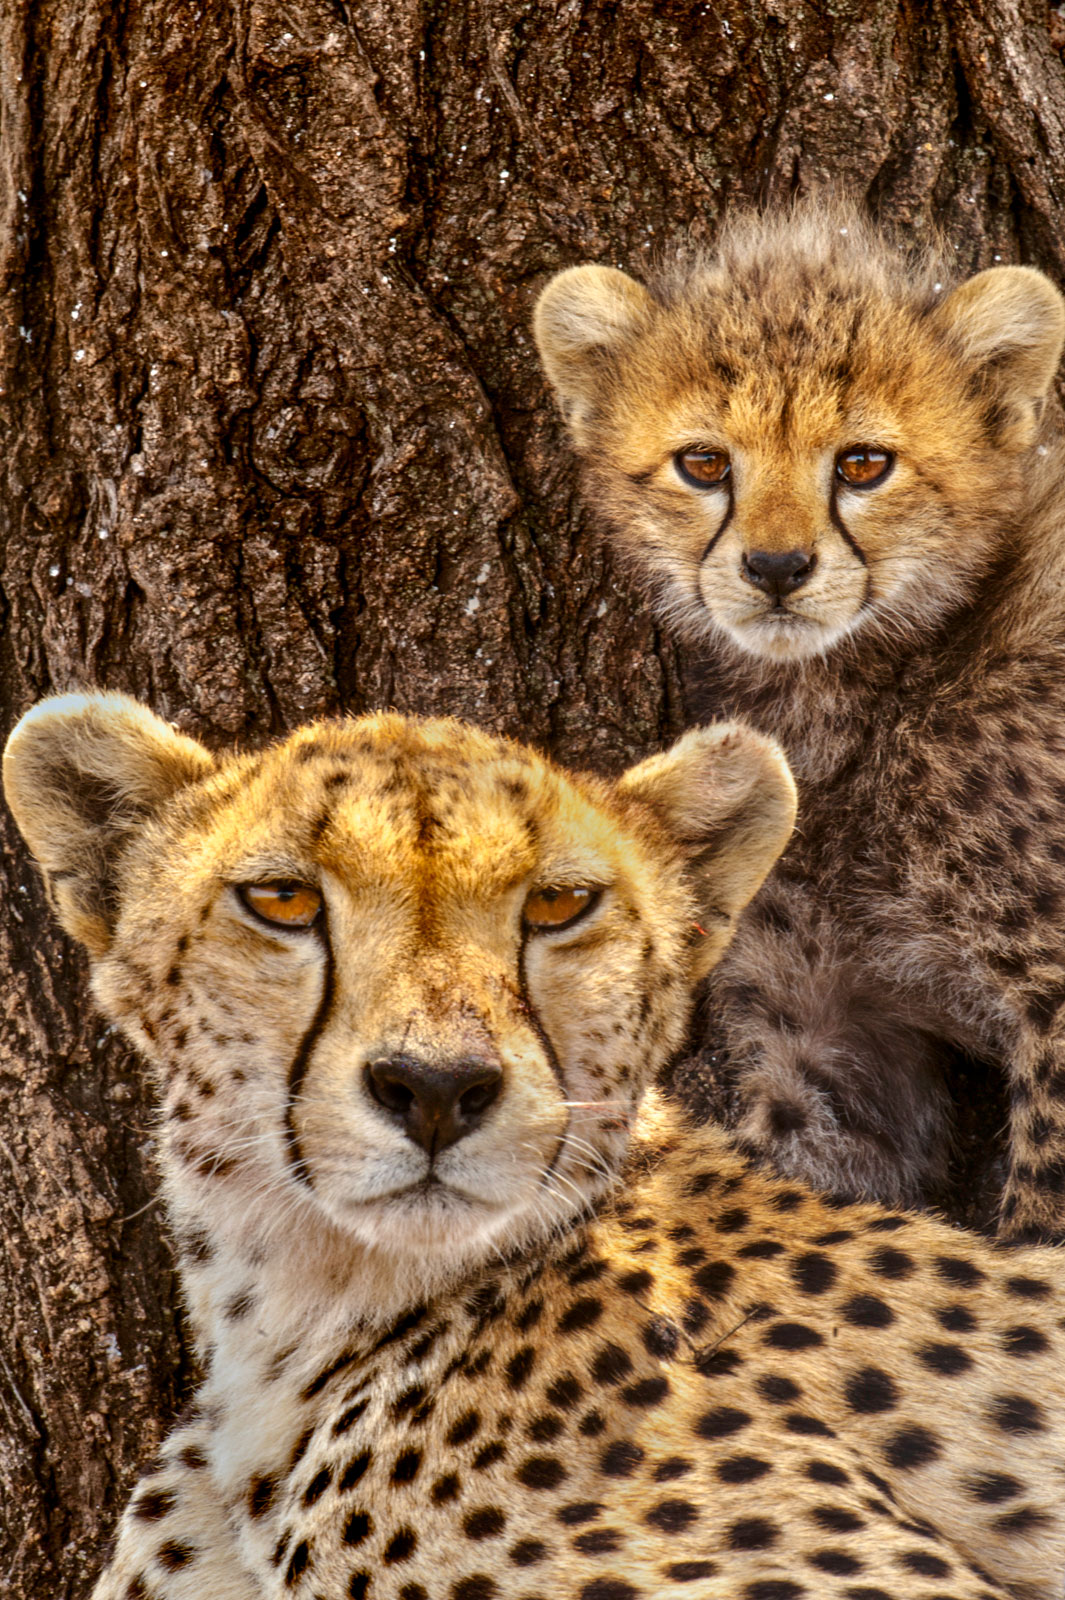 Cheetah mother with cub named Almond, Serengeti National Park, Tanzania